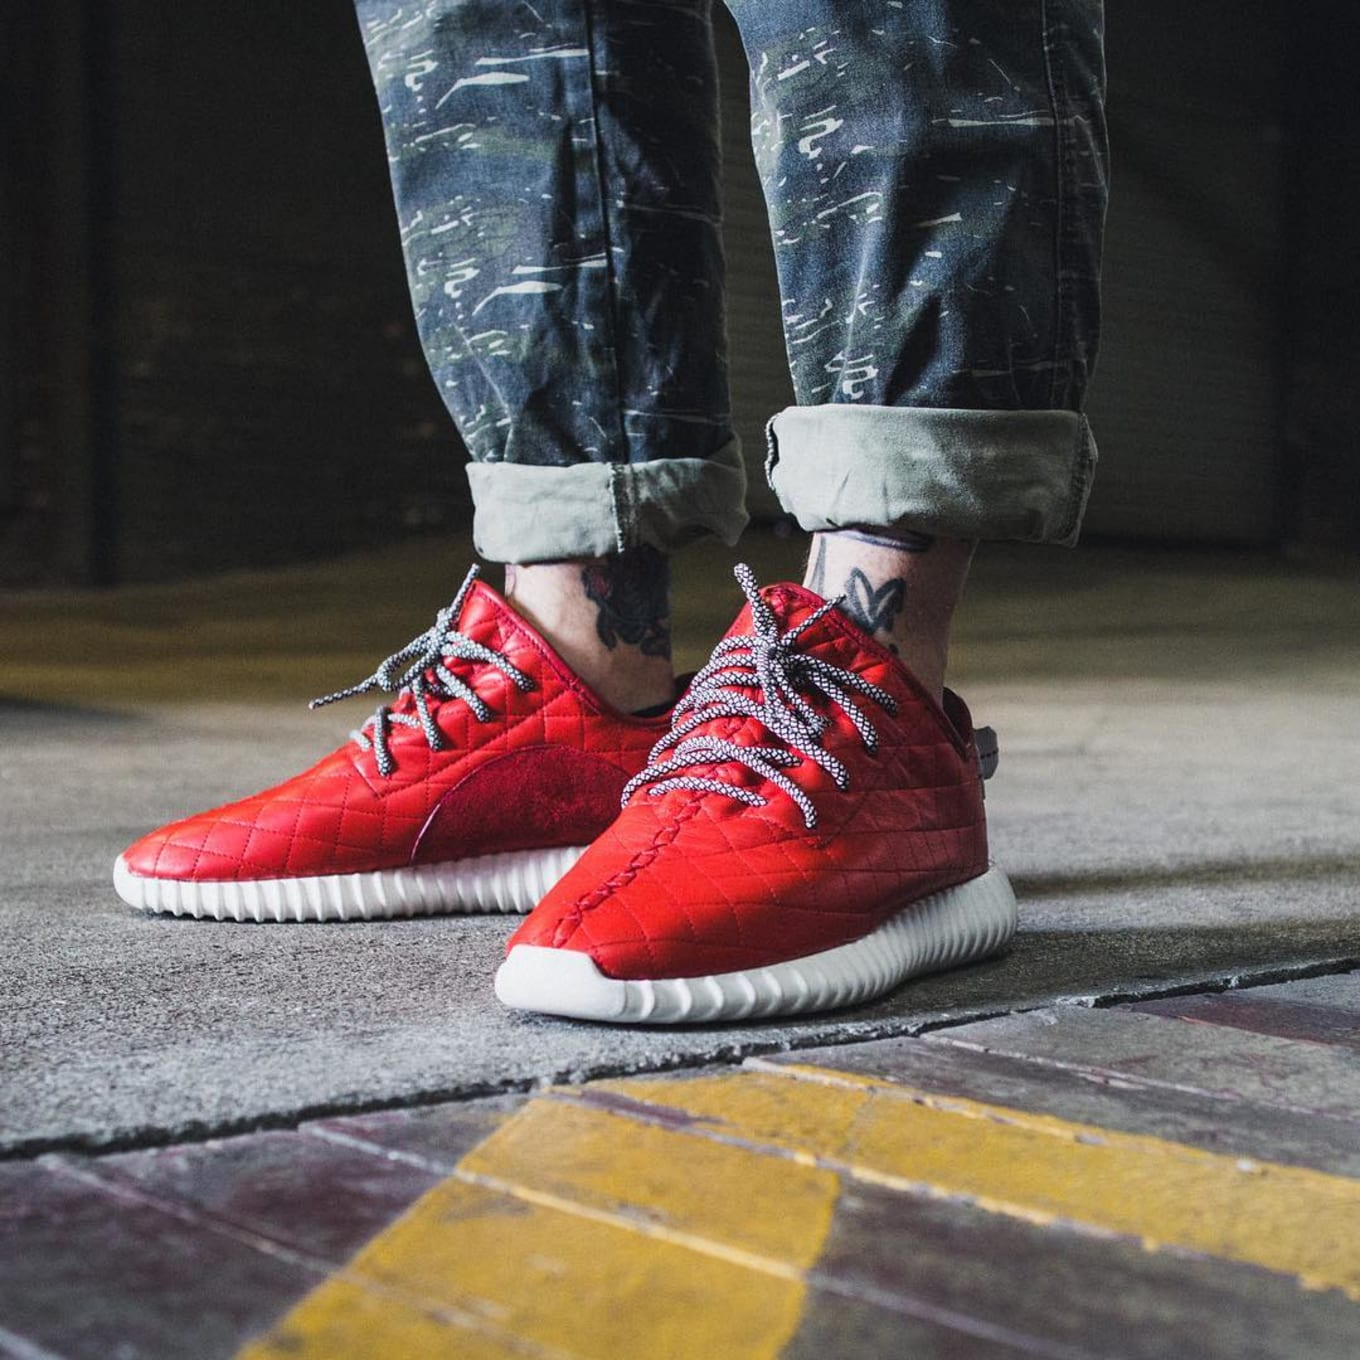 promo code d266f ccdd4 Quilted Red Leather adidas Yeezy 350 Boost by The Shoe Surgeon (1)